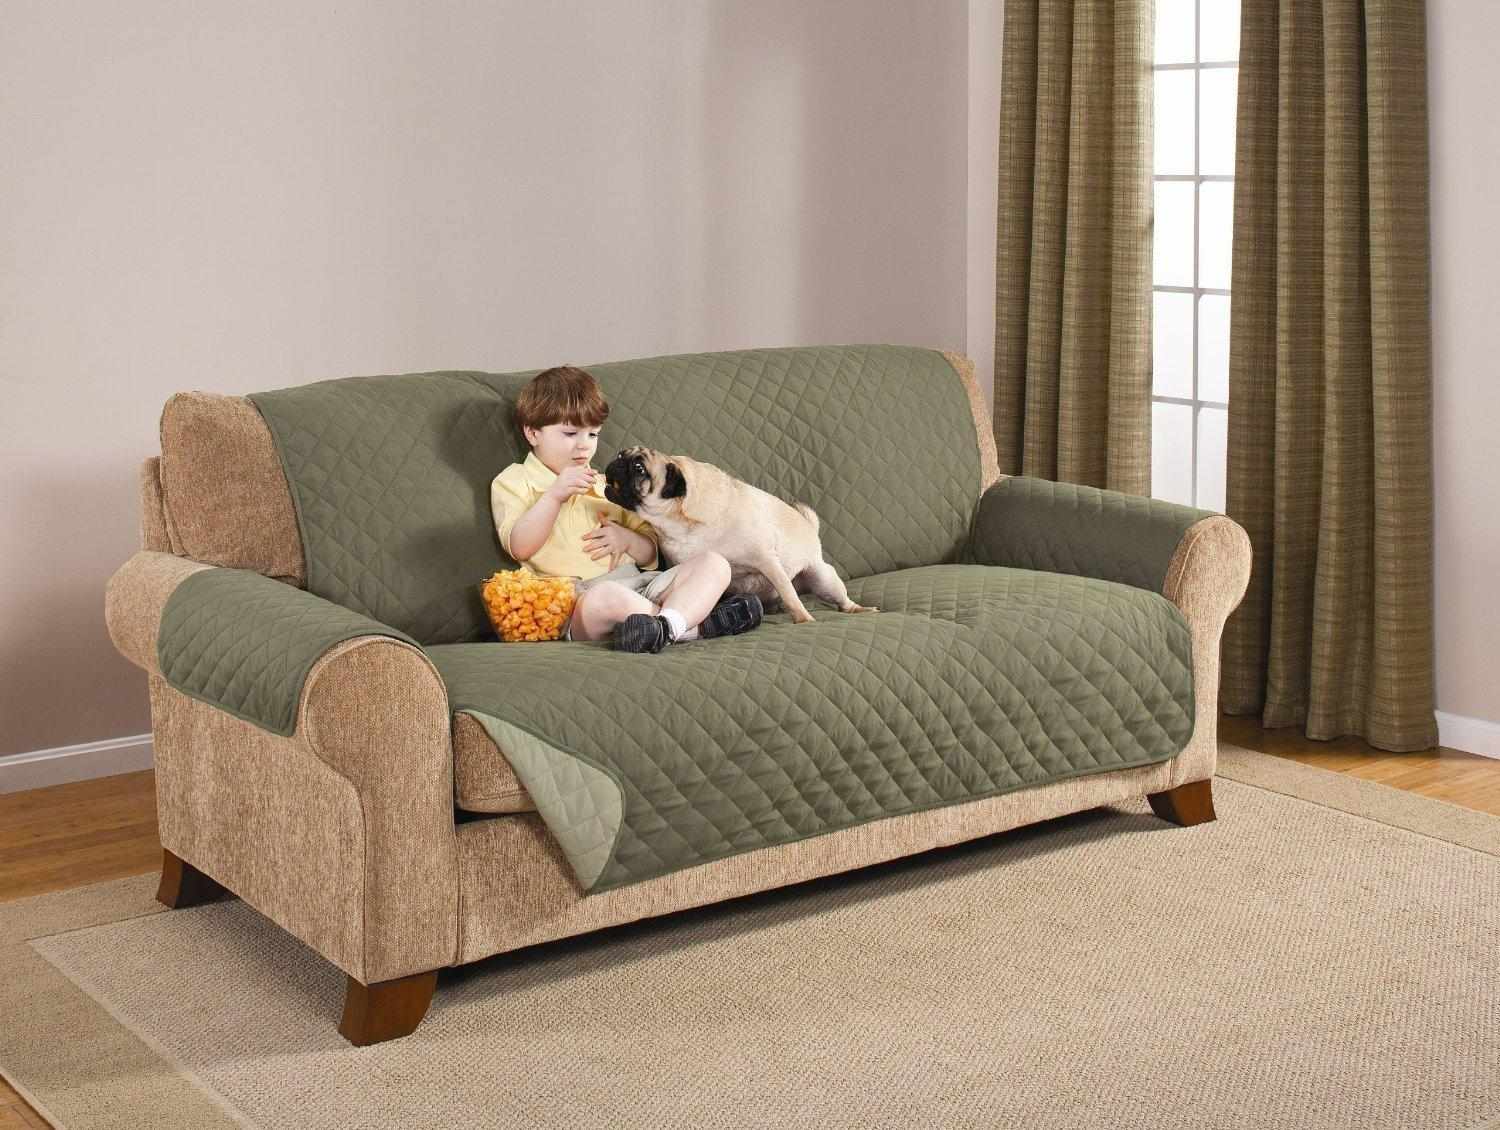 Top 10 Best Sofa Covers For Pets – Pet Sofa Covers To Keep Clean With Regard To Sofa Settee Covers (Image 20 of 22)